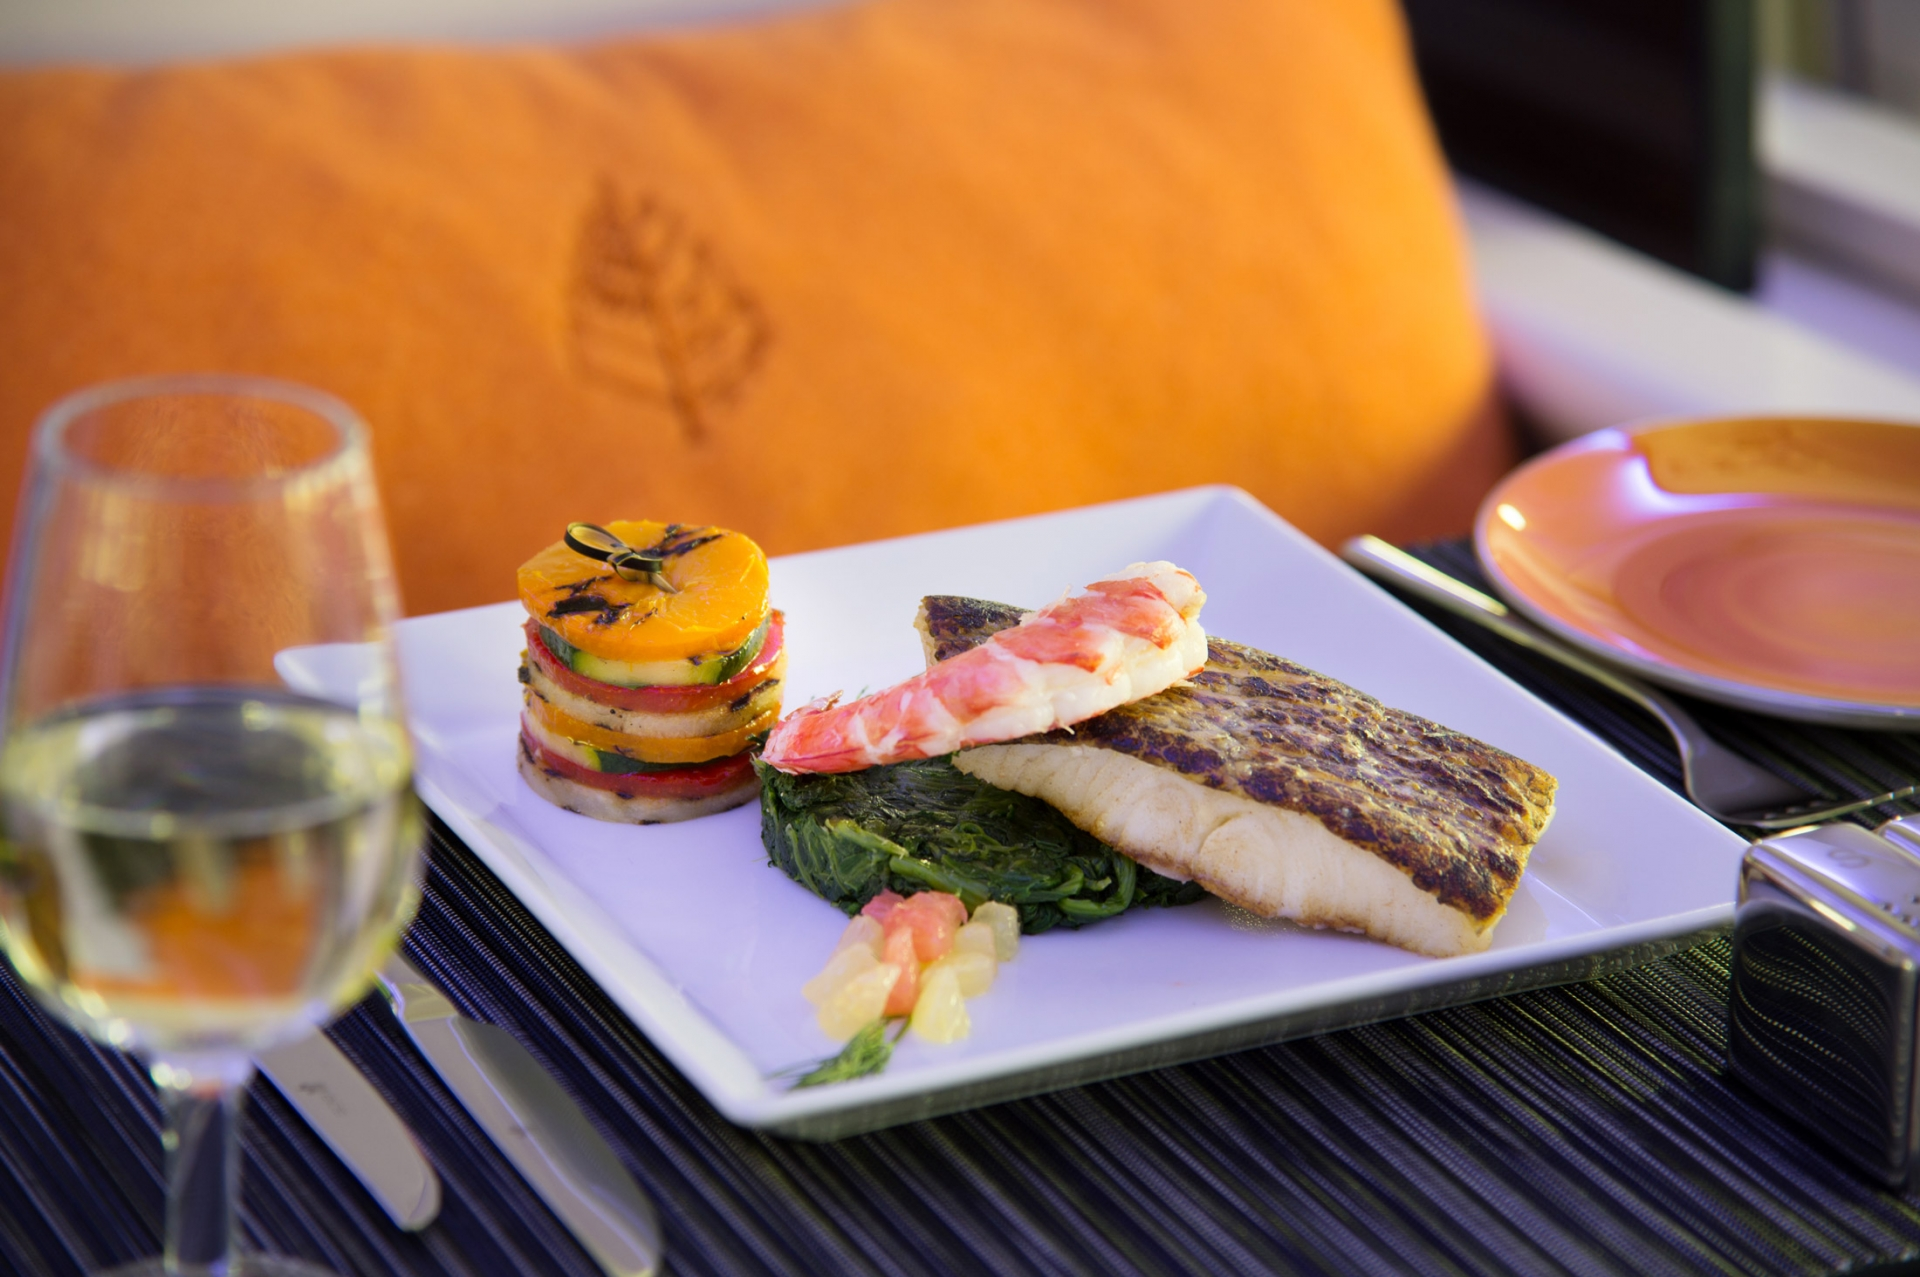 Meals on the flight are specially created by Four Seasons executive chefs and use only the freshest ingredients